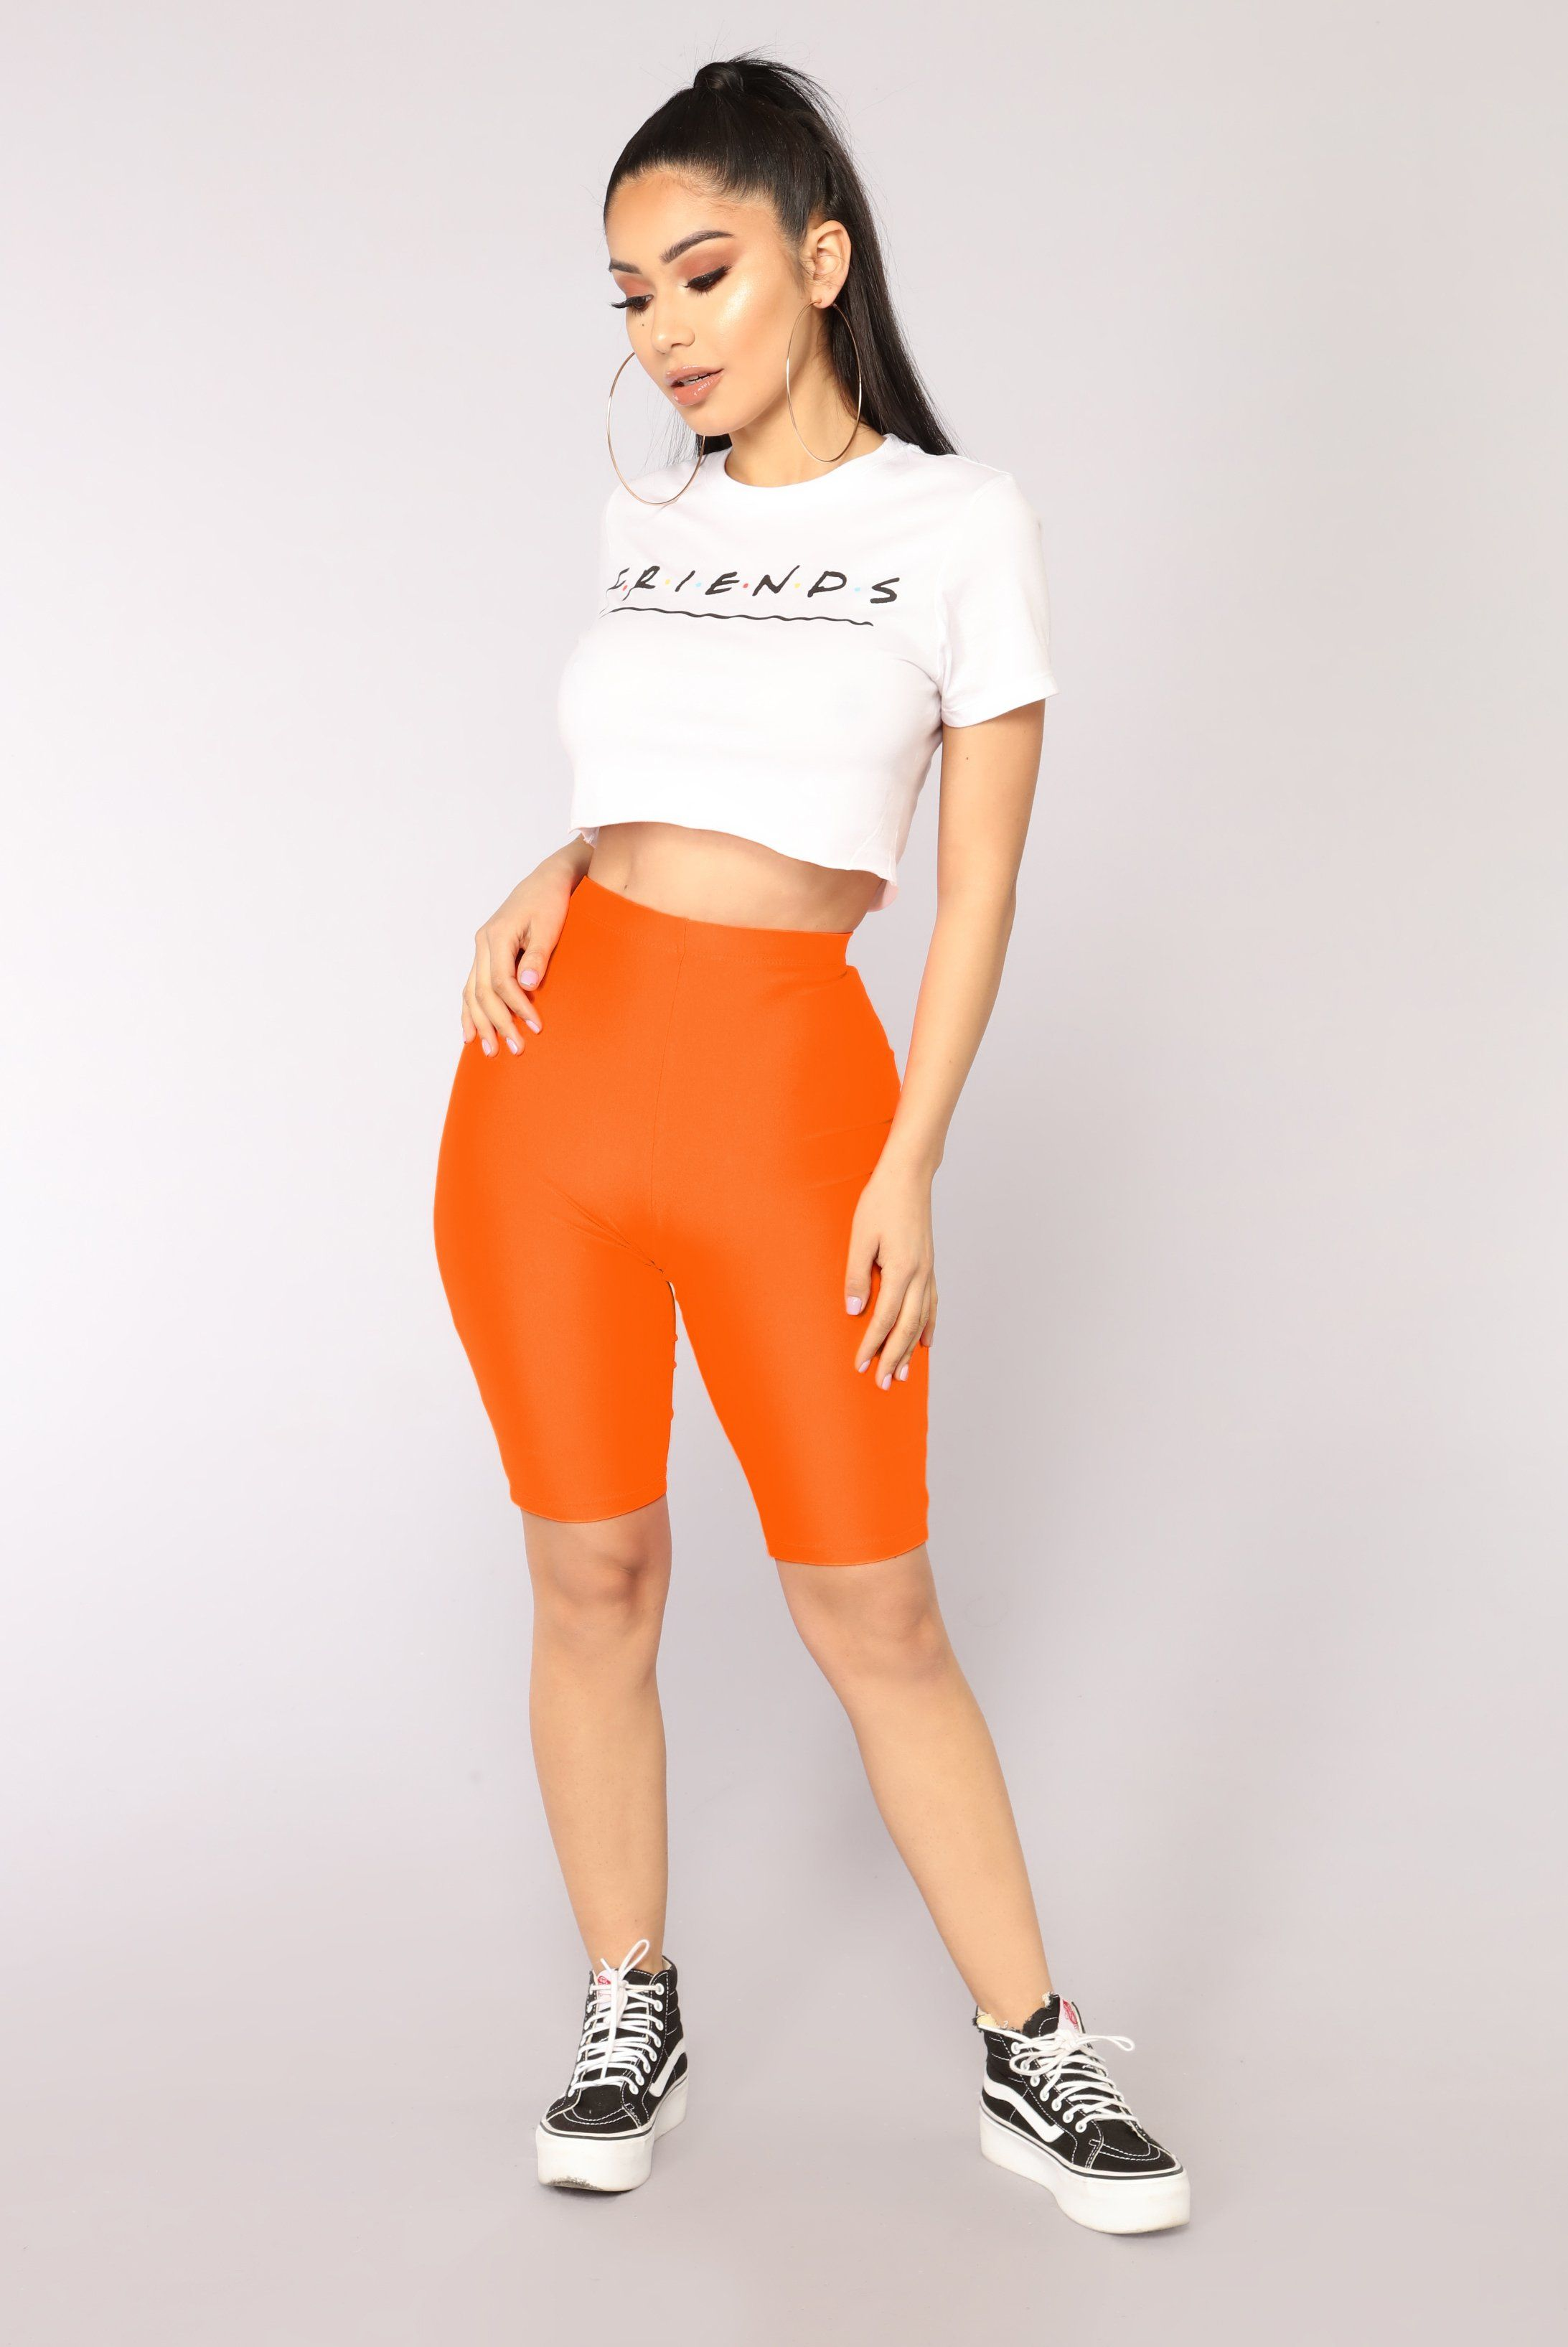 New Ladies Curve Jersey Cycling Shorts Summer Knee Hot Pants Active Wear Shorts